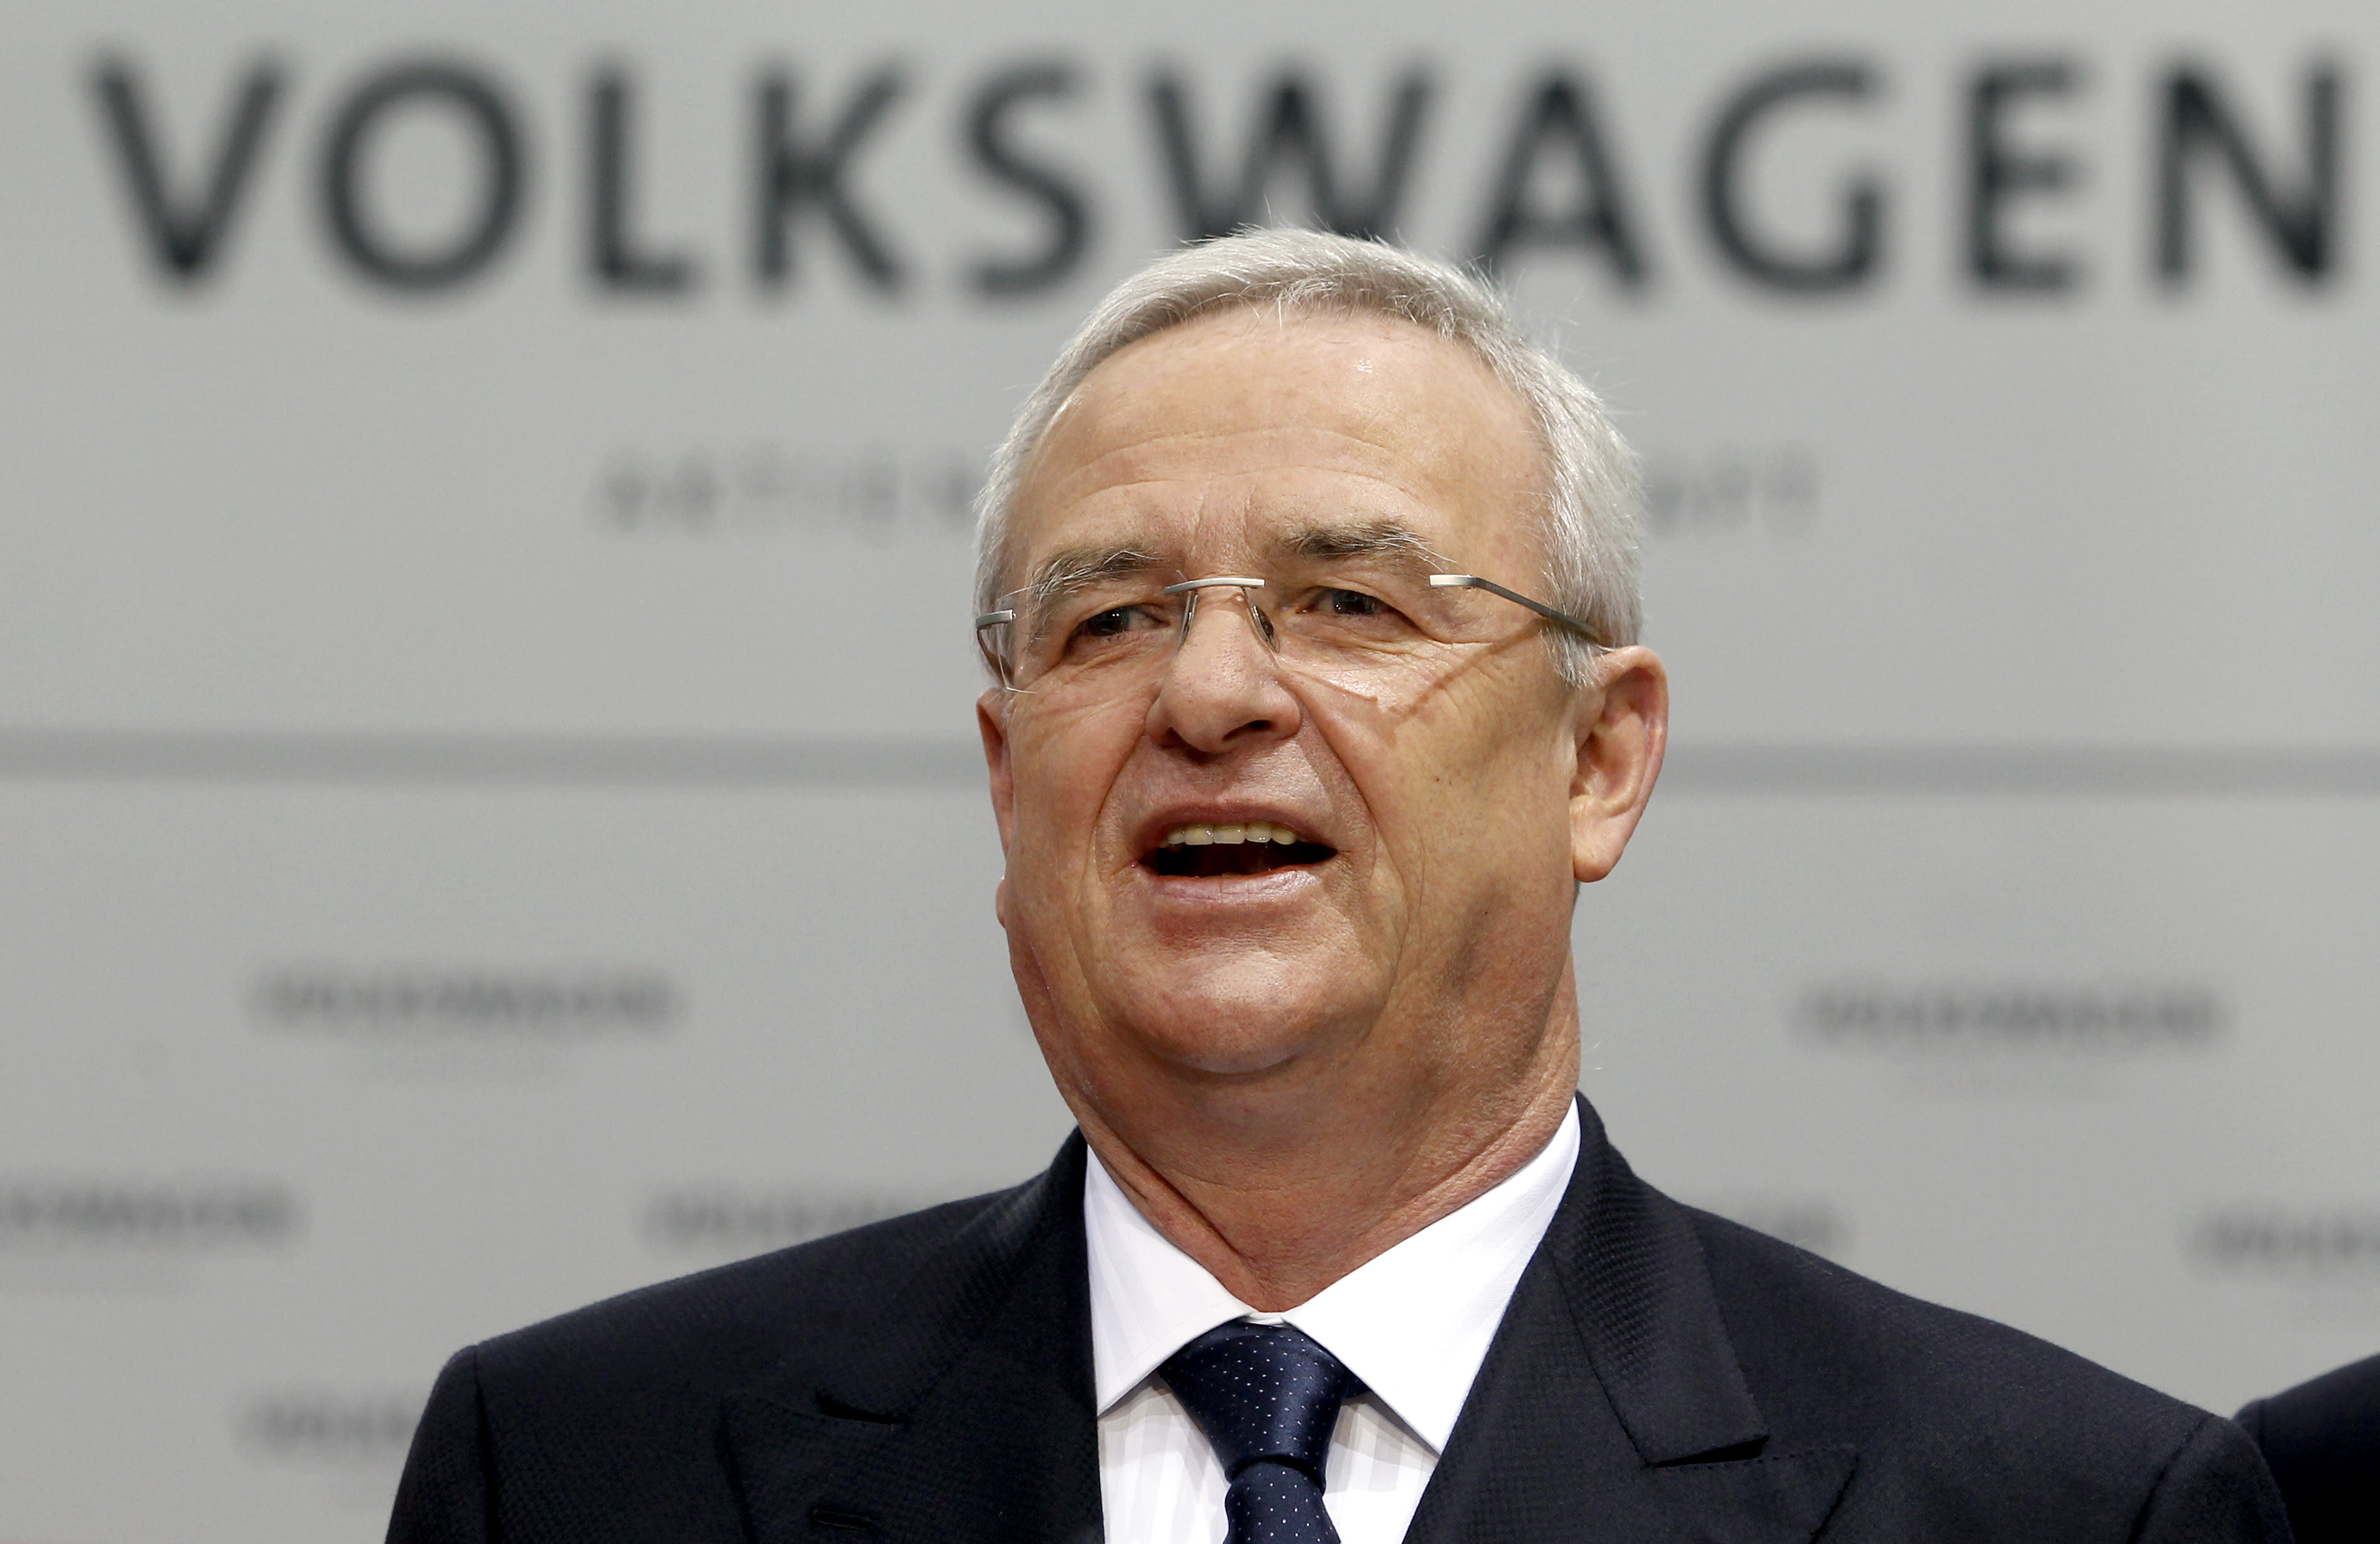 Volkswagen CEO Winterkorn to have contract extended to 2018